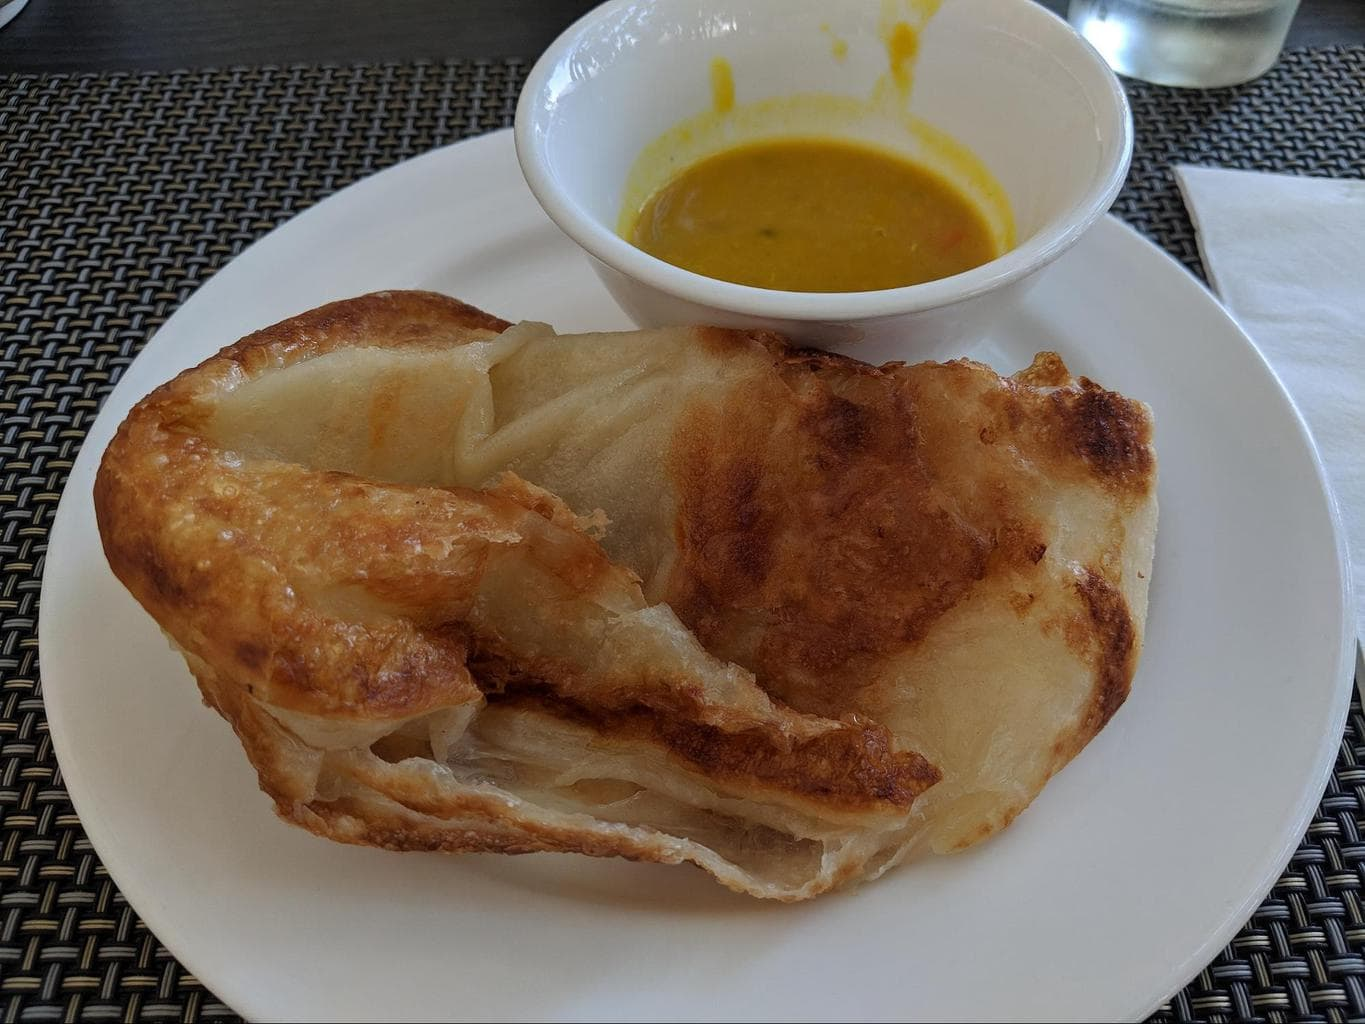 Breakfast parathas at Hotel Fort Canning